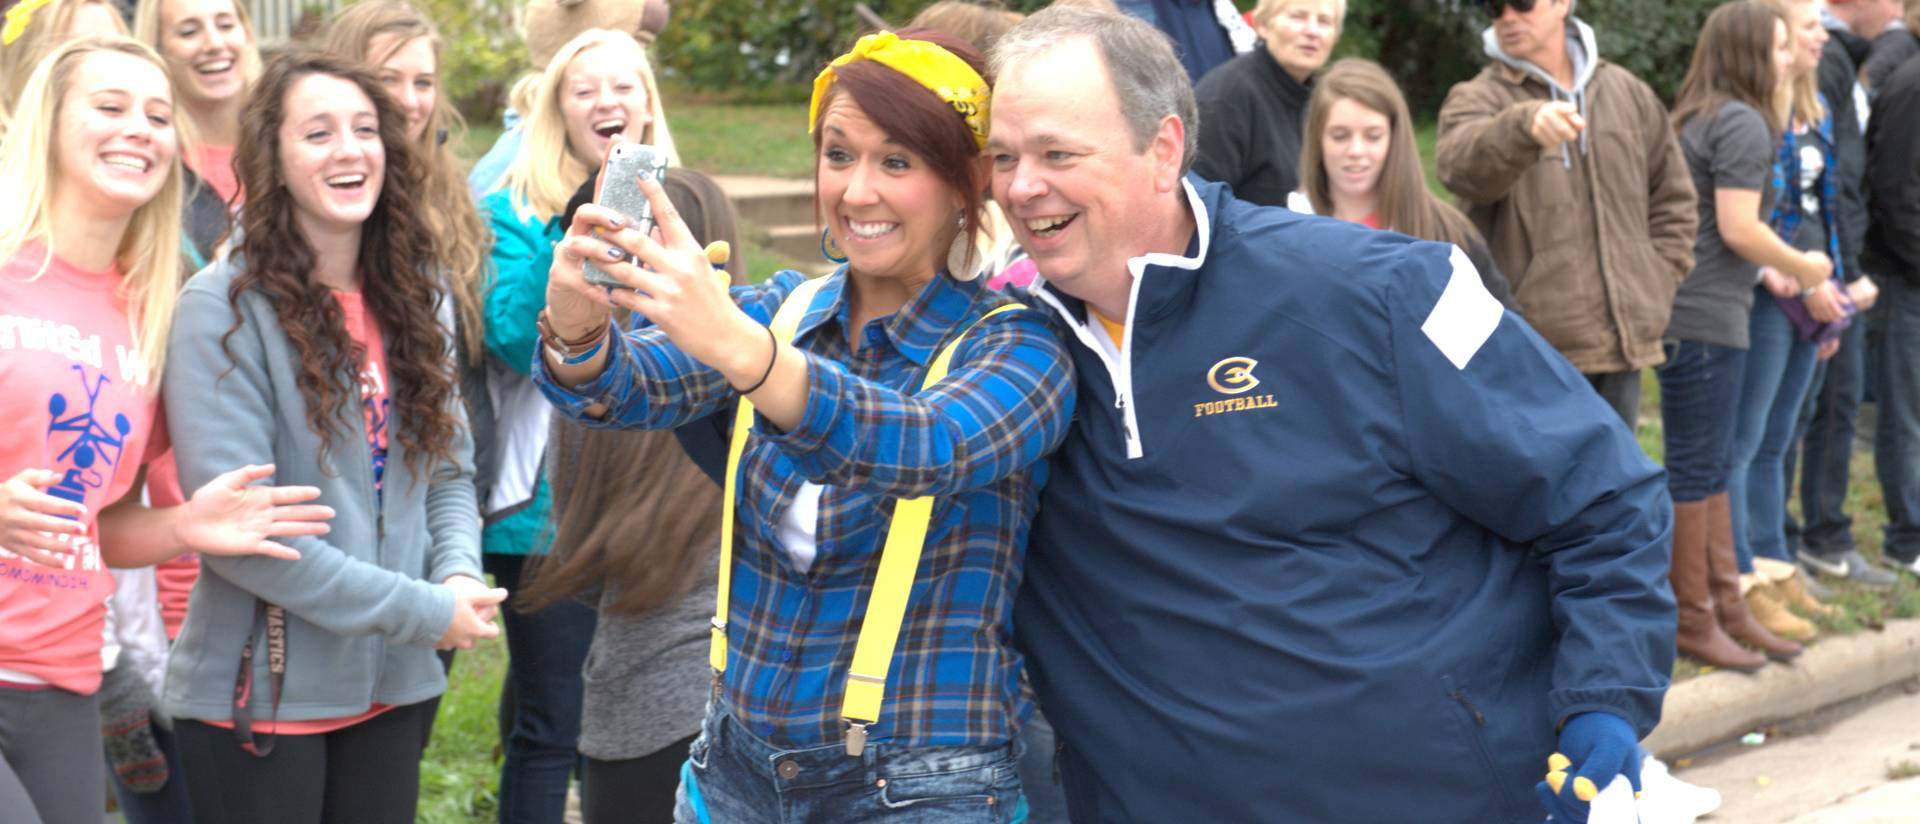 Chancellor James Schmidt with students along the parade route during Homecoming 2014.